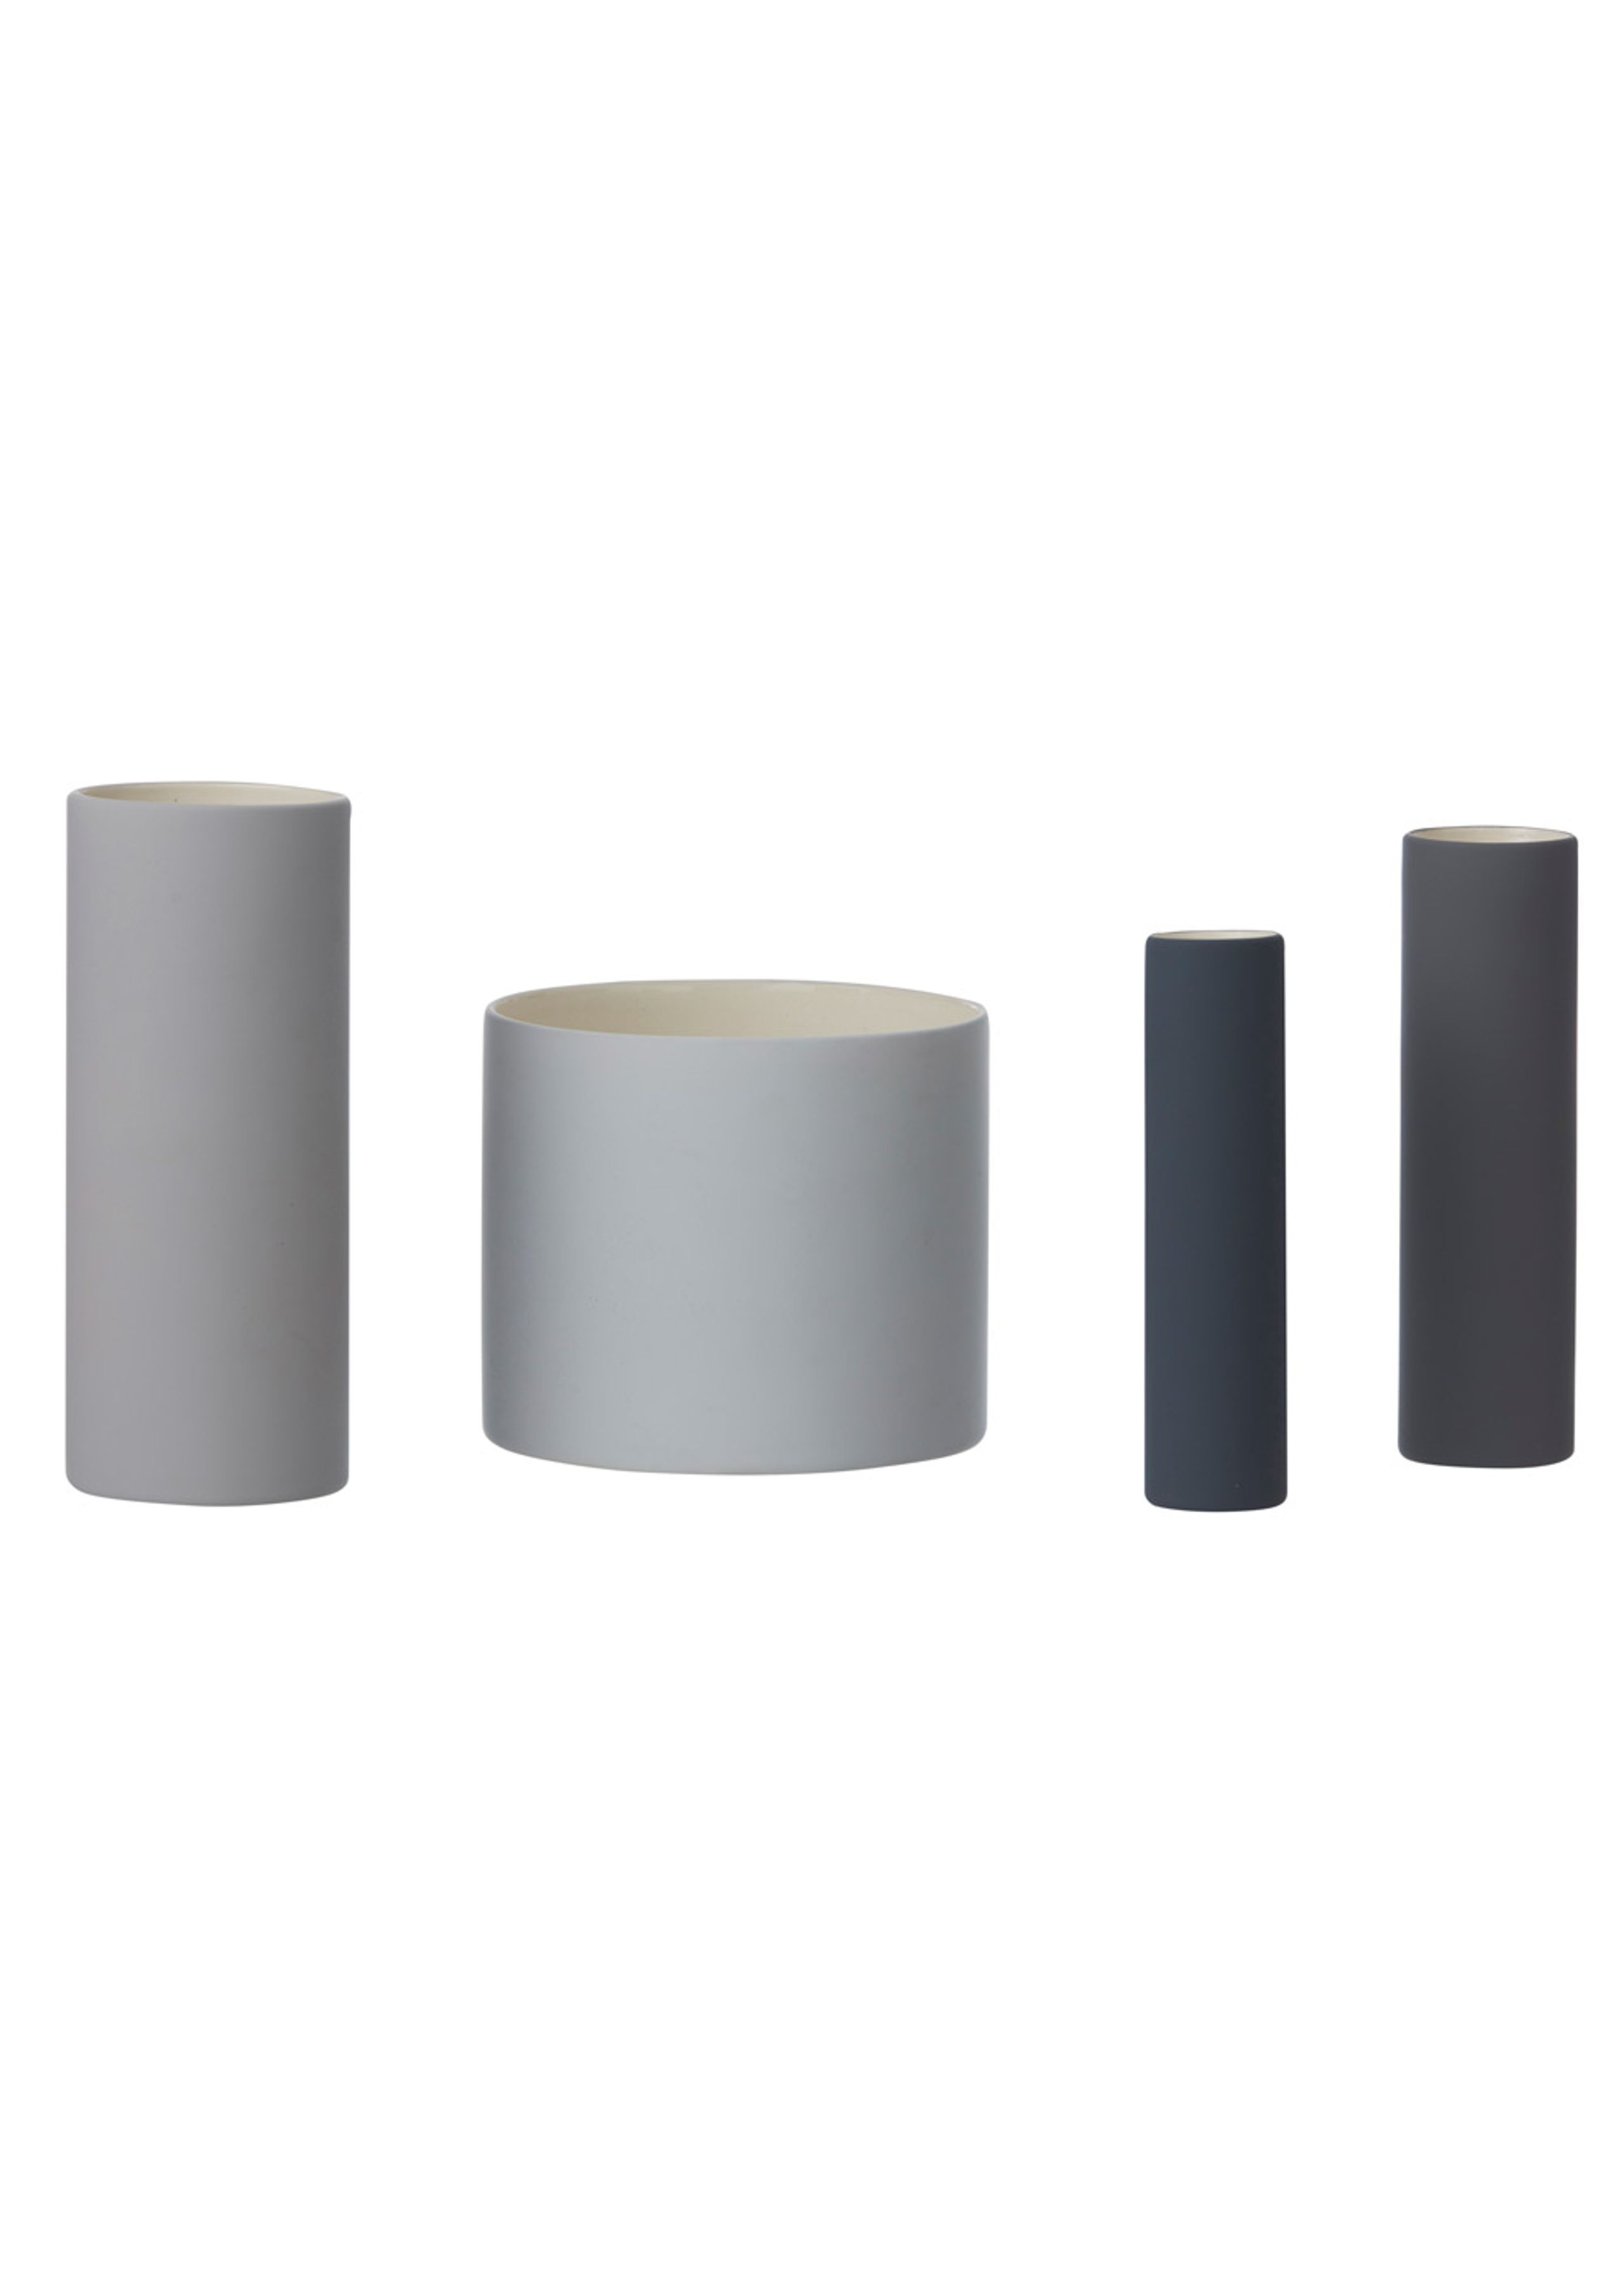 Image of   Collect Vases